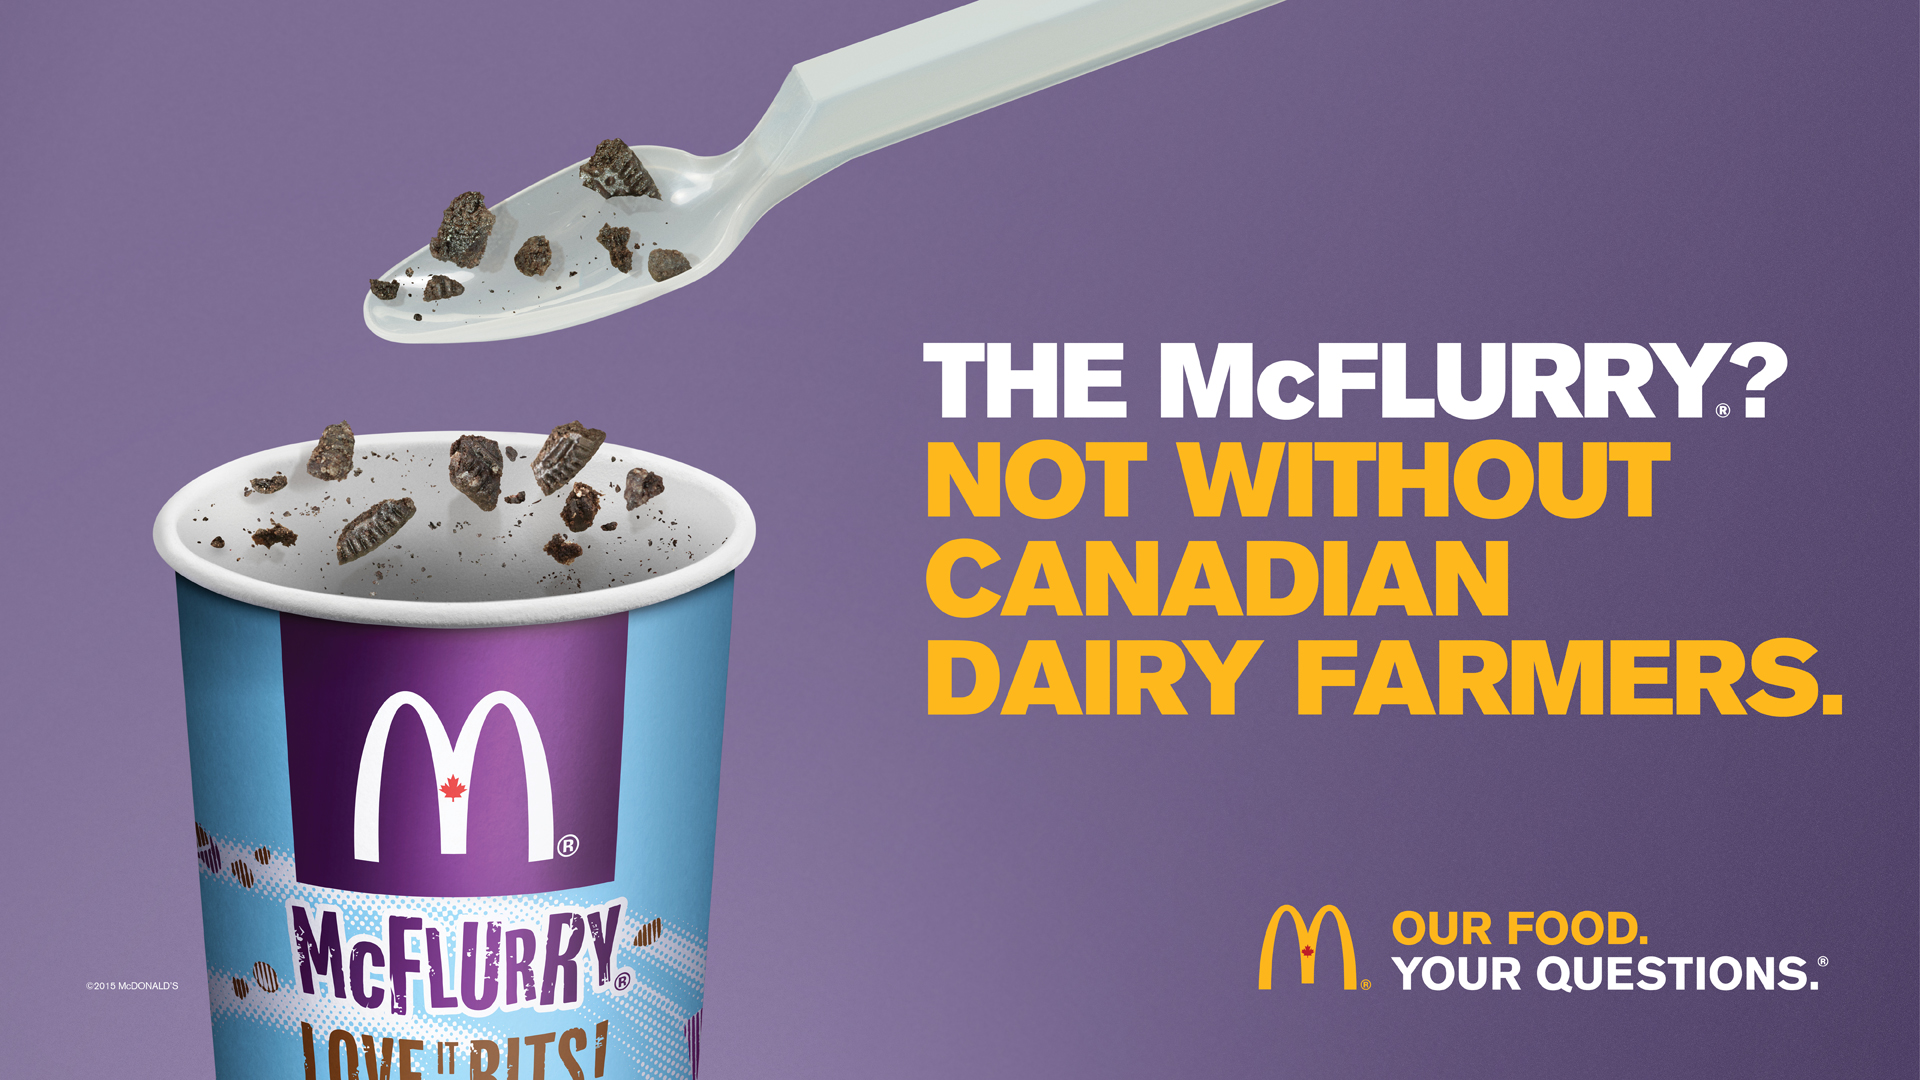 P51596_MCD_McFlurry_1920x1080_2E_small